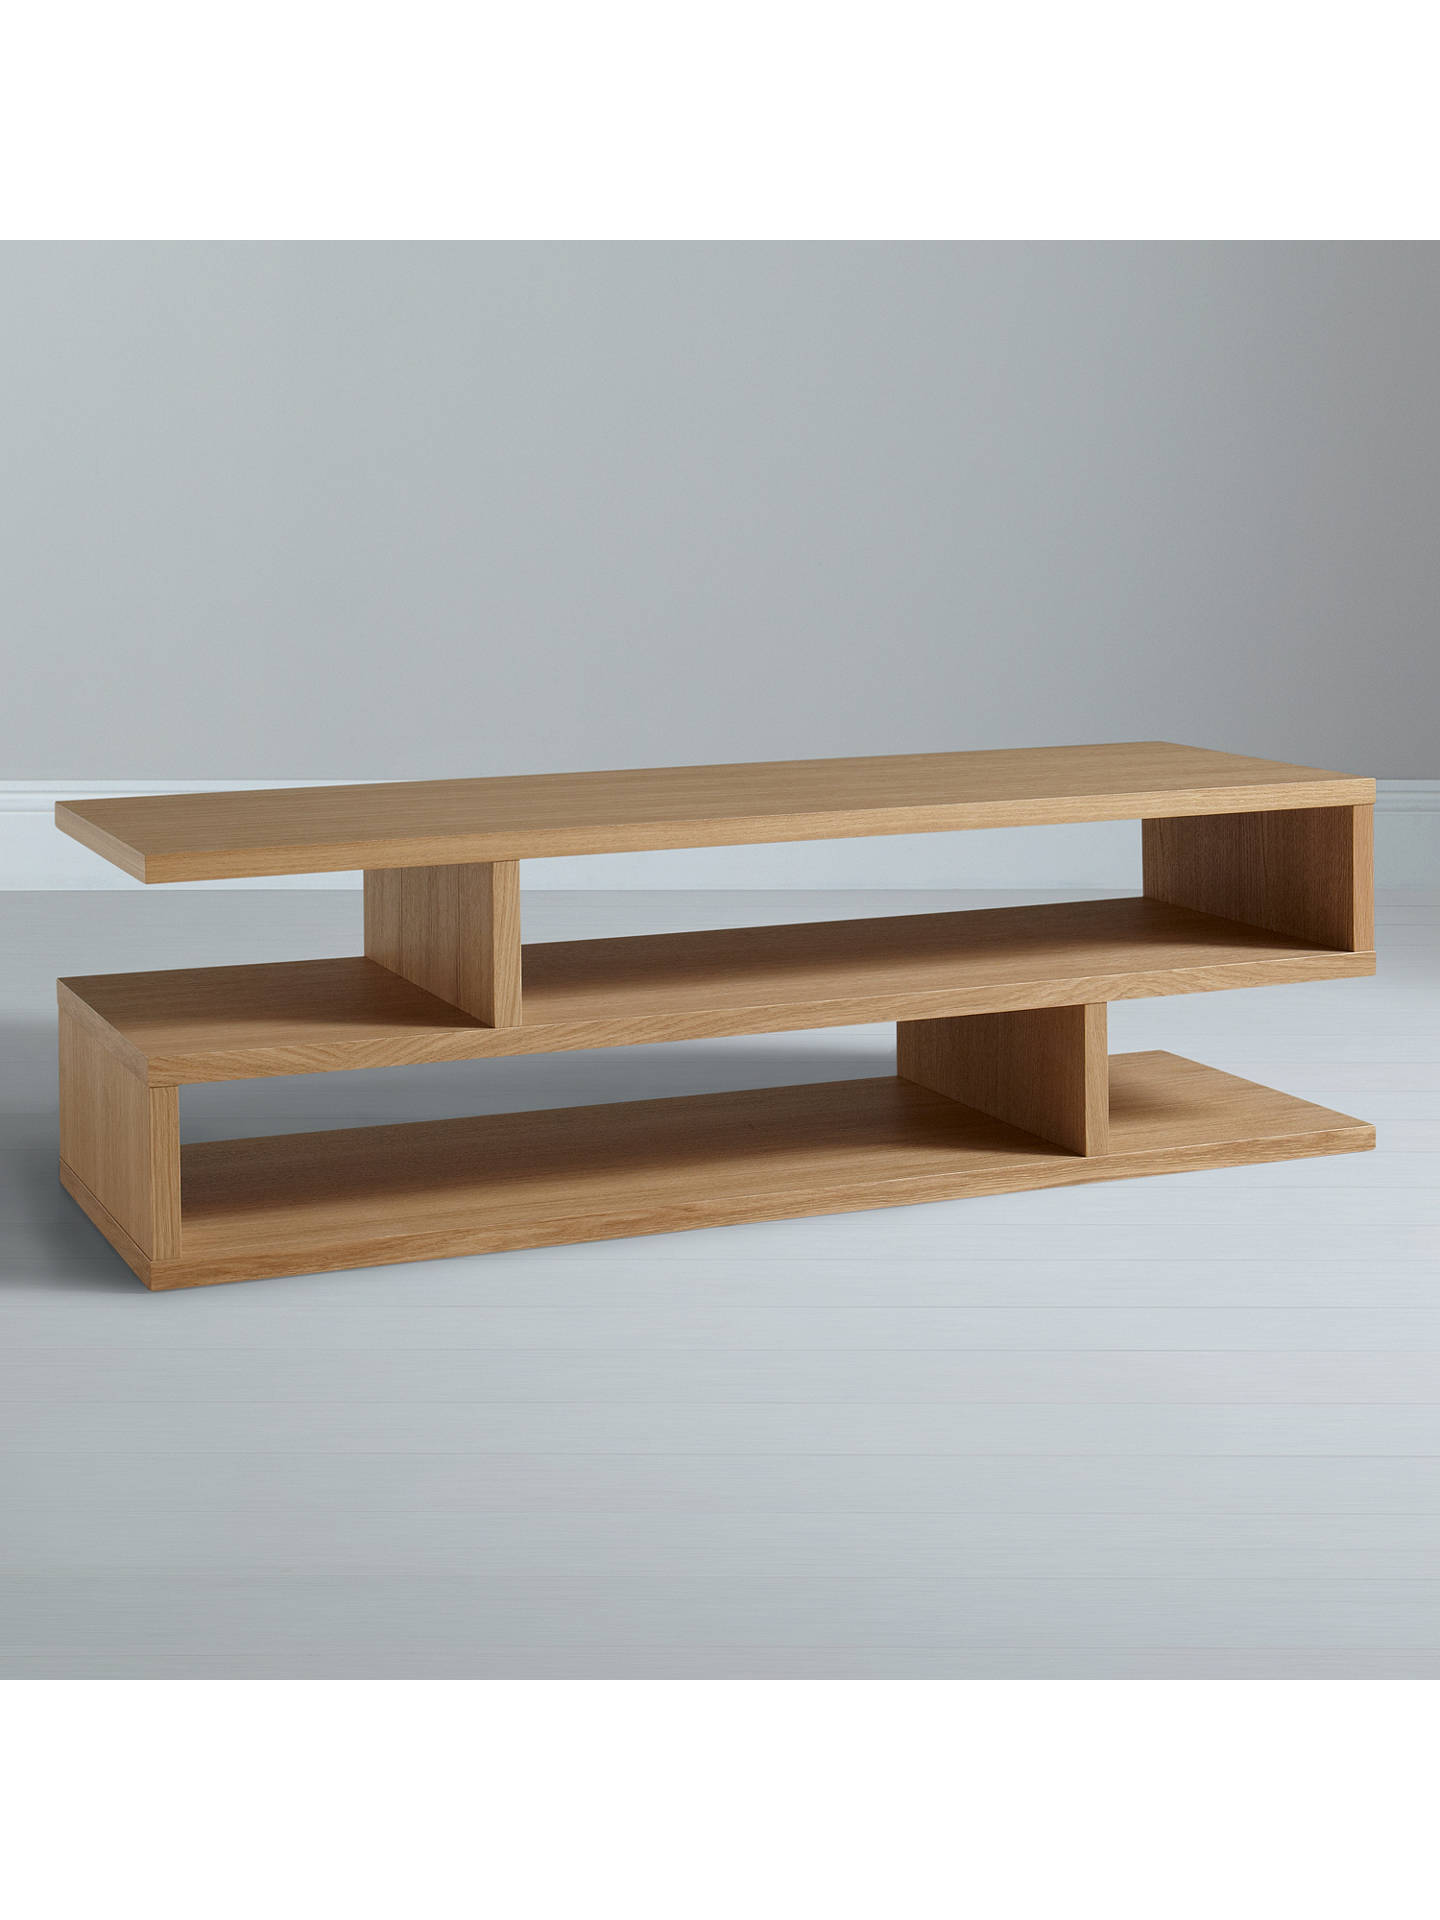 ... BuyContent by Terence Conran Balance Coffee Table Oak Online at johnlewis.com ...